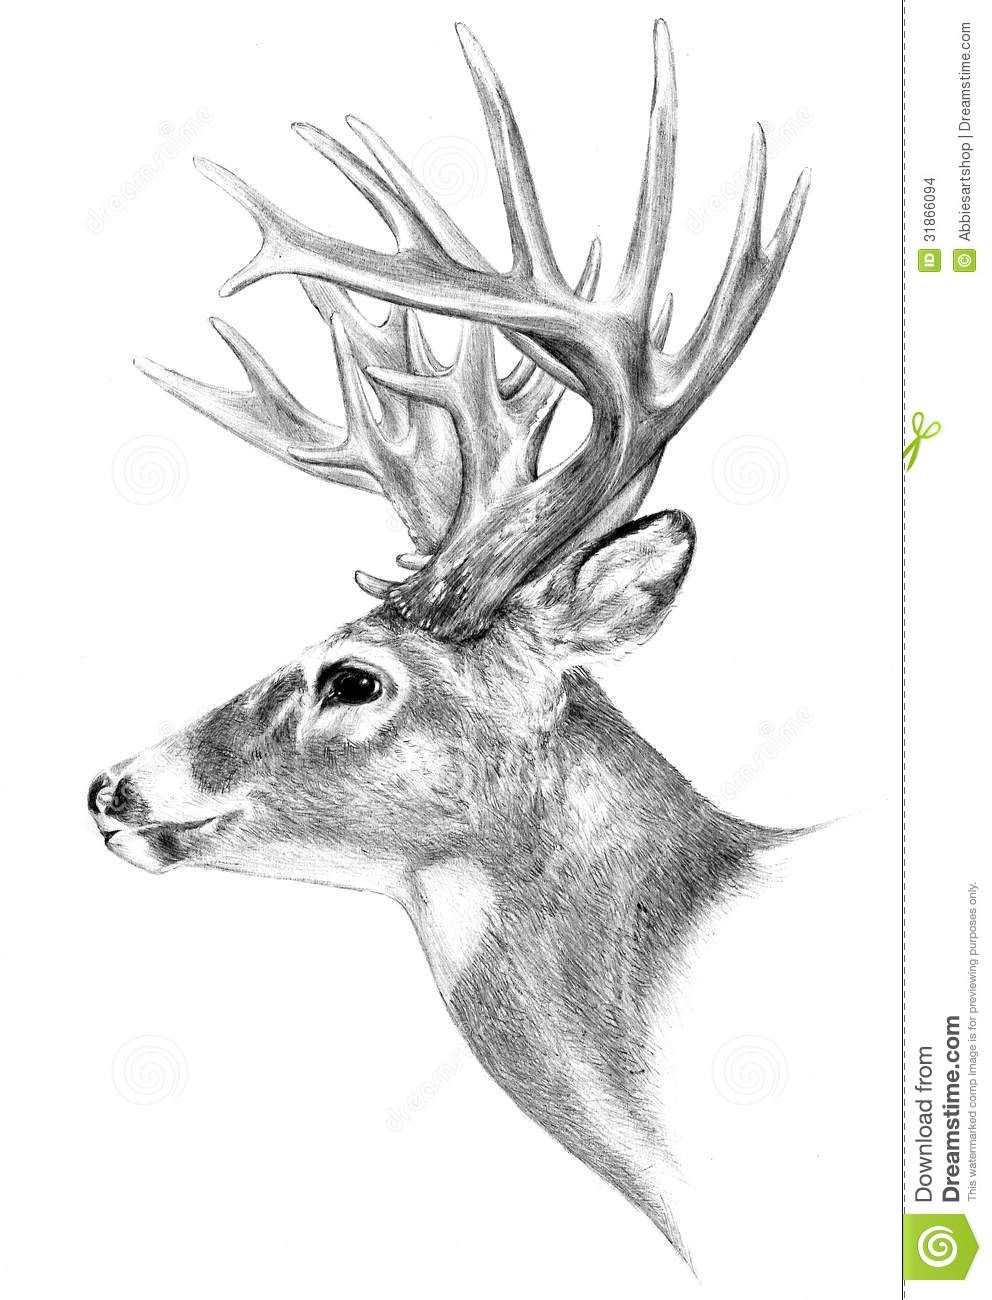 deer pencil drawing - Google Search | Animal silhouette | Pinterest ...